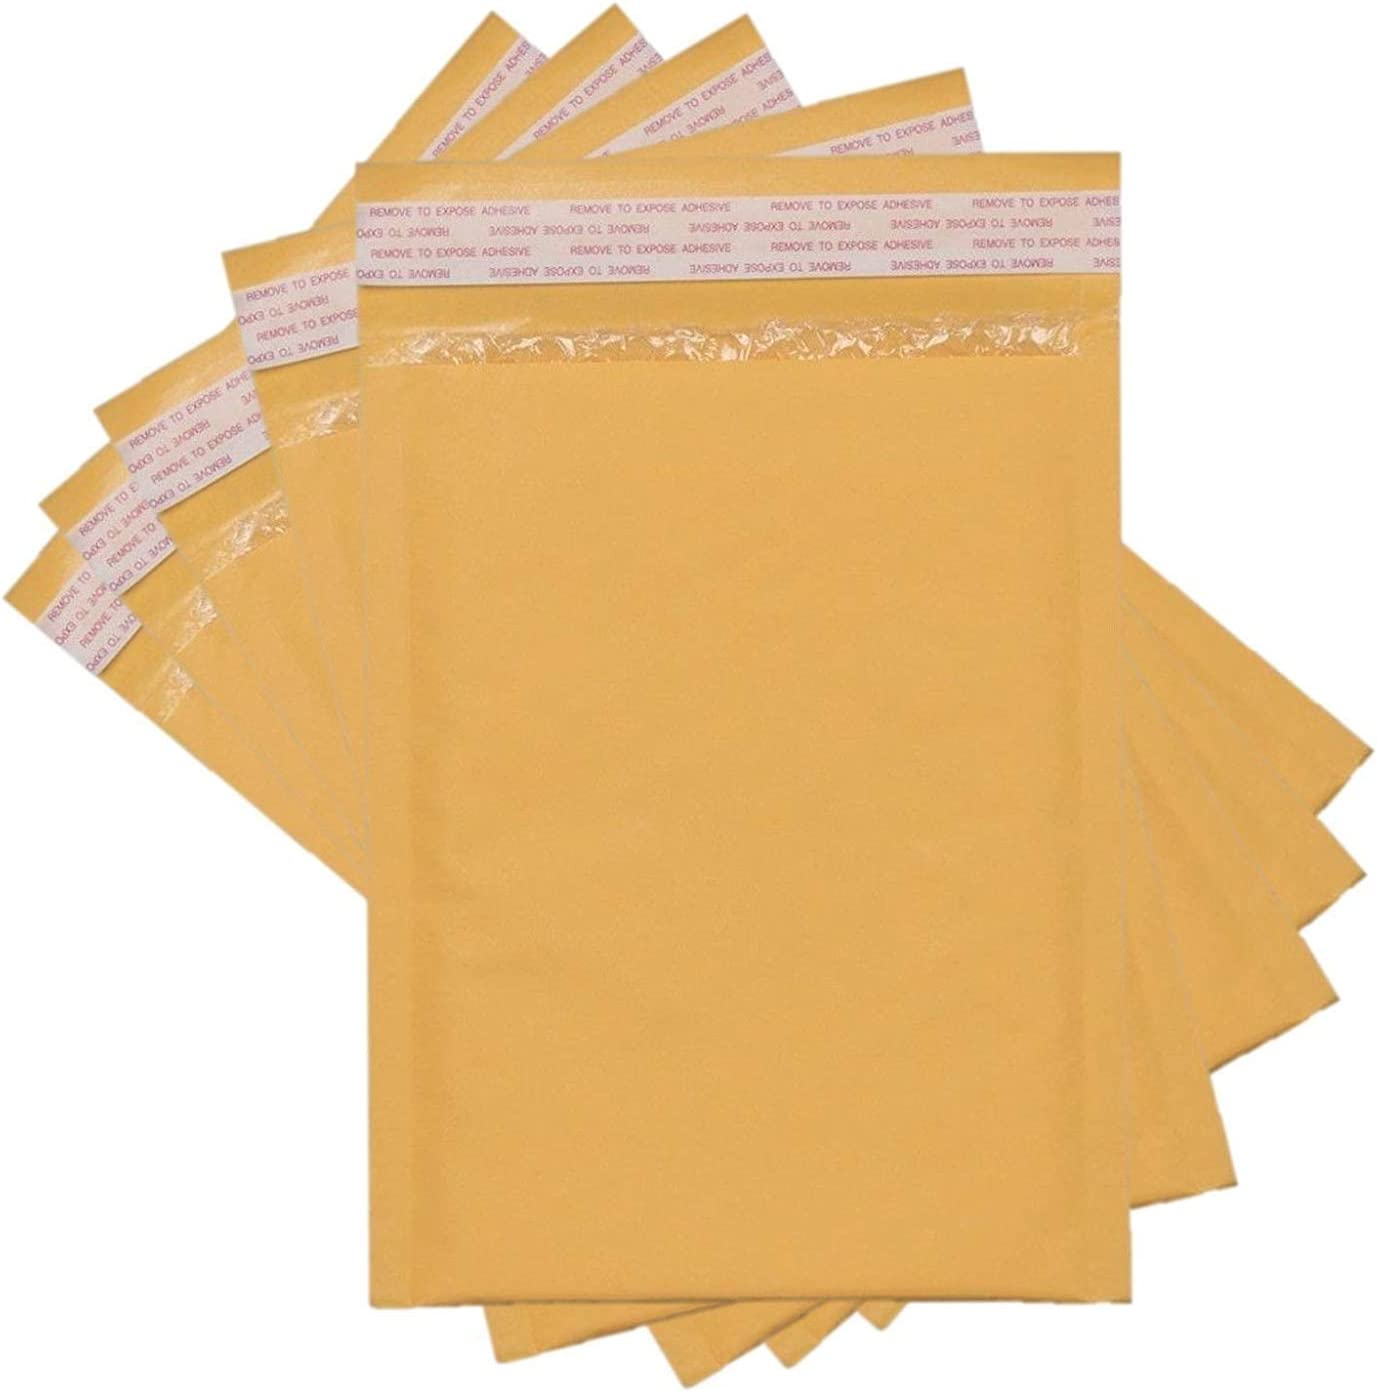 Sales4Less #2 Kraft Bubble Mailers 8.5x12 Inches Shipping Padded Envelopes Self Seal Waterproof Cushioned Mailer 10 Pack